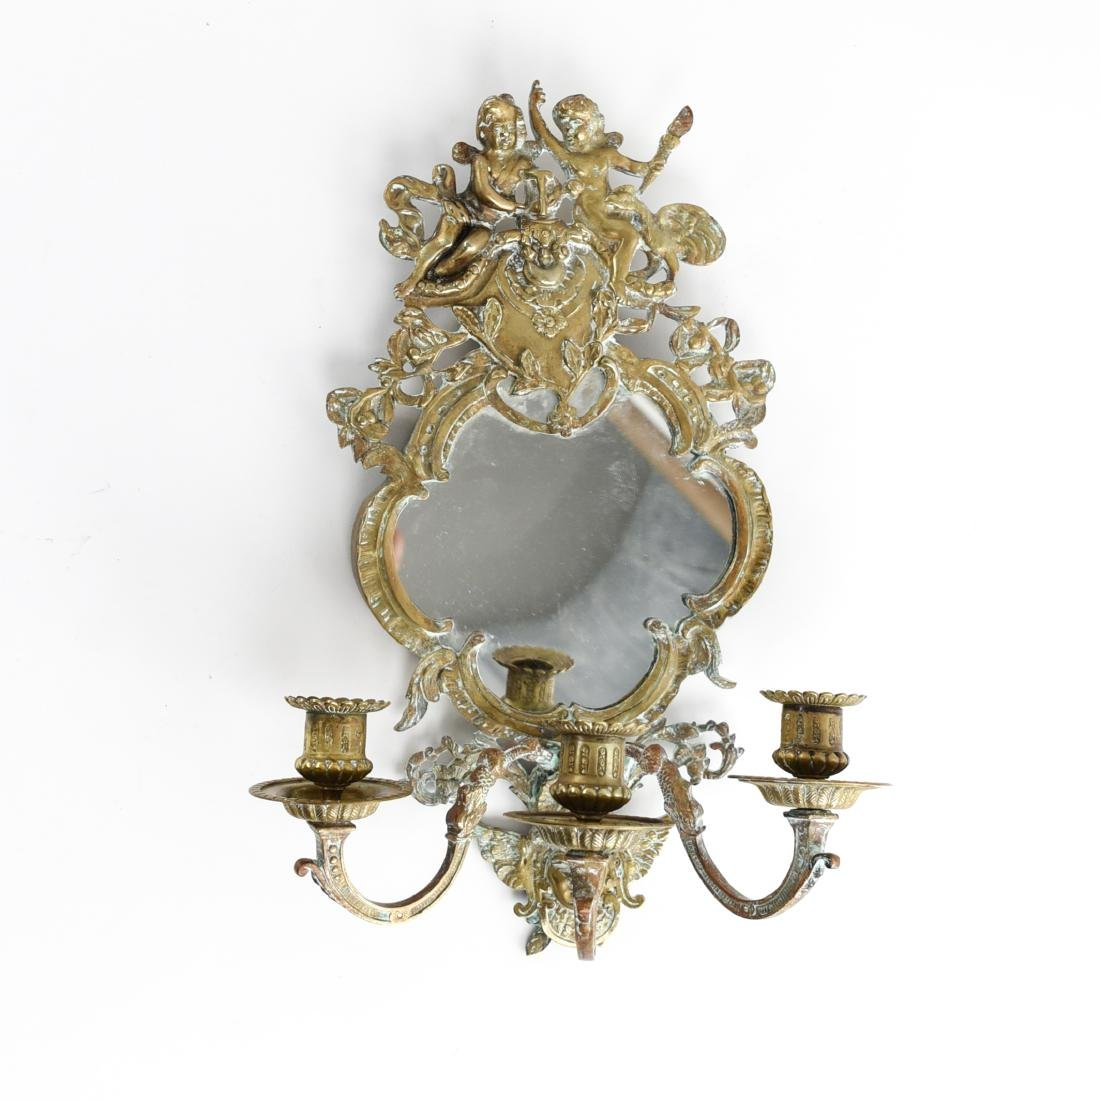 19TH C. BRASS MIRRORED SCONCE W/ ANGEL